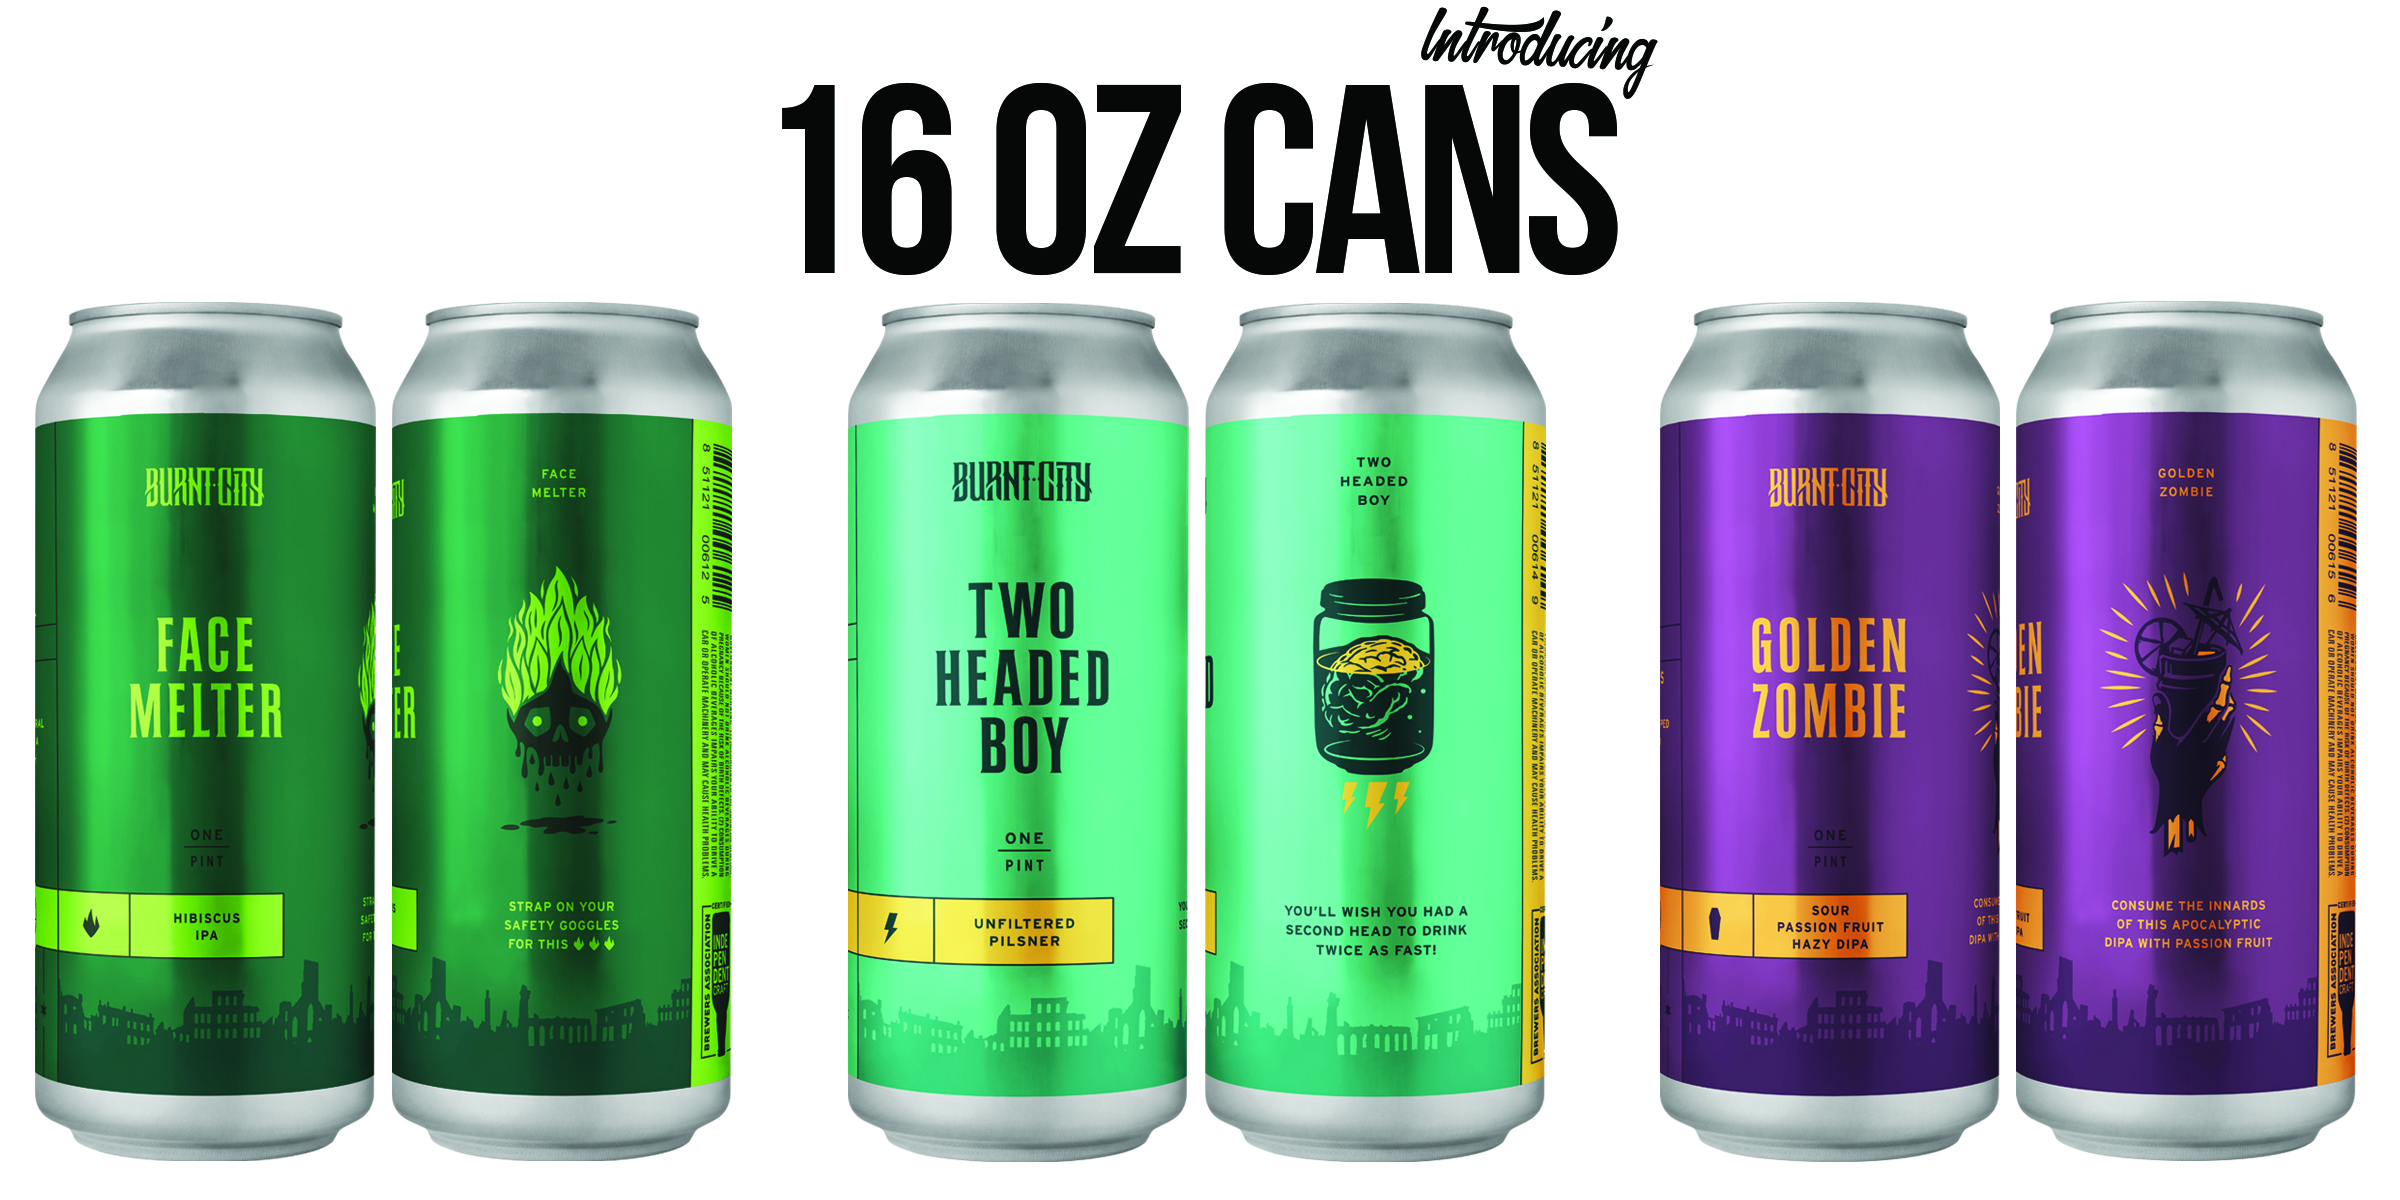 Burnt City Brewing's 16oz cans, Face Melter Hibiscus IPA, Two Headed Boy Unfiltered Pilsner, Golden Zombie Tart Passion Fruit Hazy DIPA